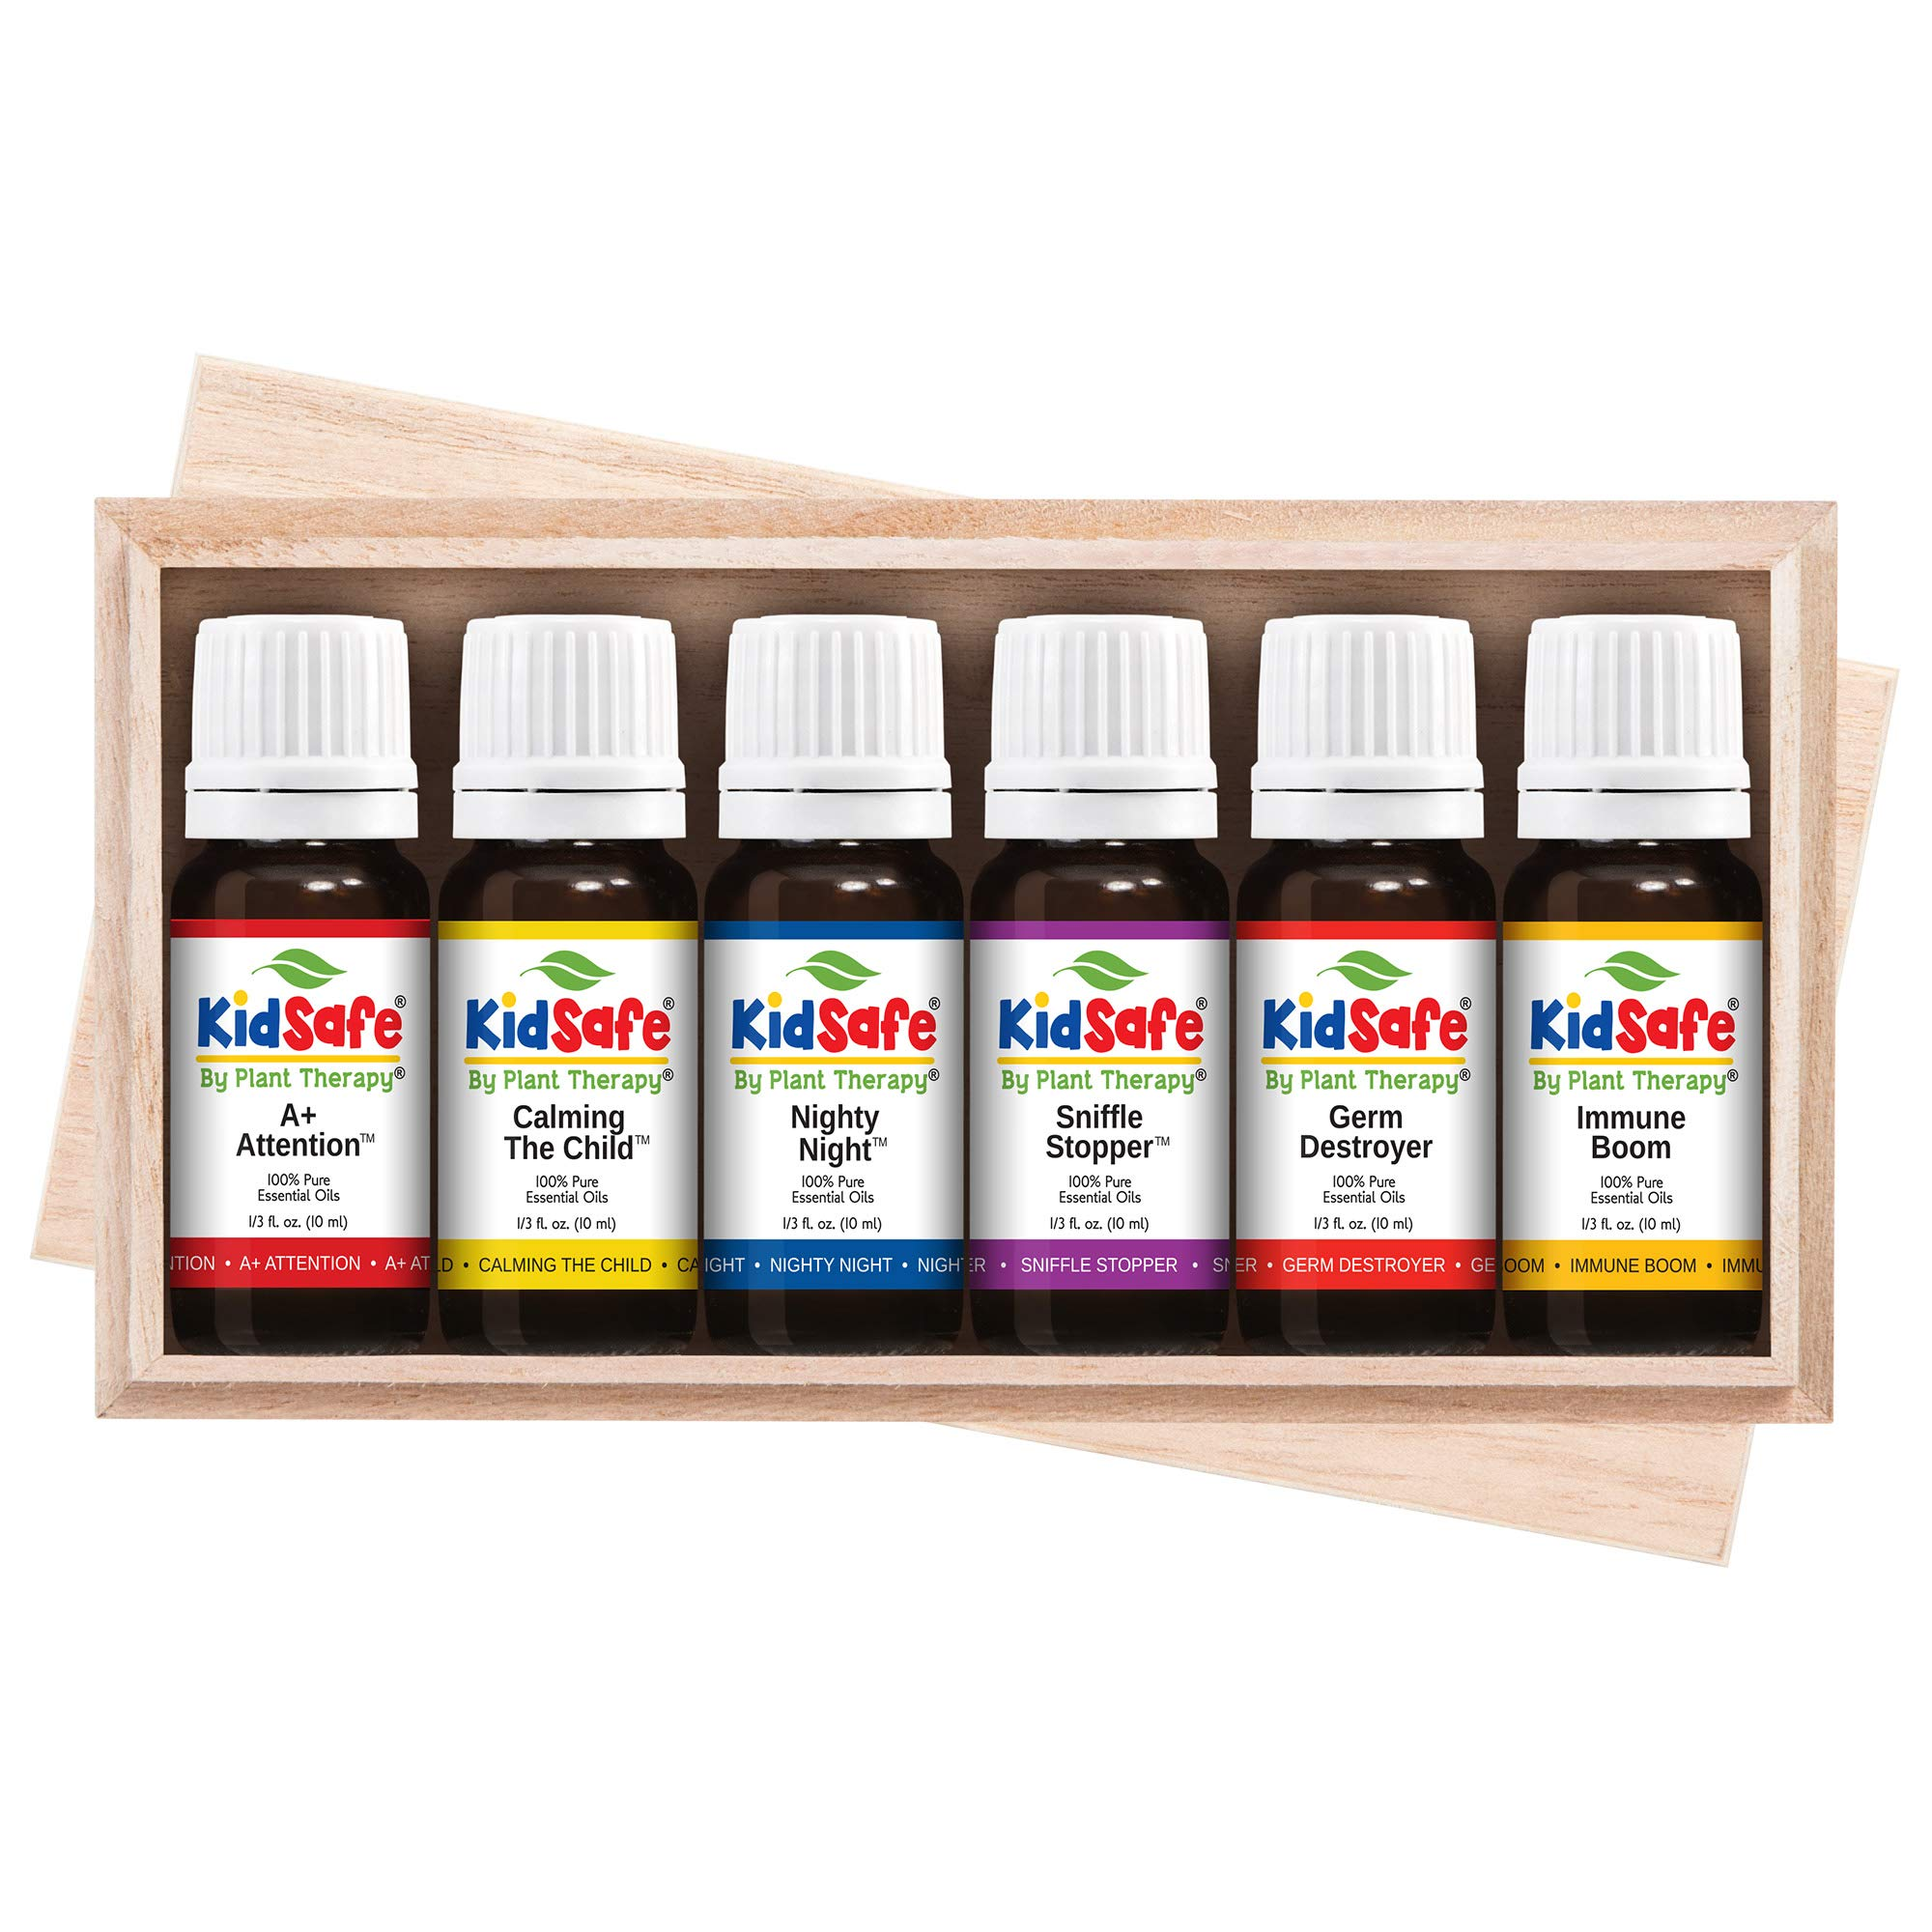 Plant Therapy Essential Oils KidSafe Starter Set for Focus, Calming, Sleep, Immune Support 100% Pure, 6 Undiluted Blends, Natural Aromatherapy, Therapeutic Grade 10 mL (1/3 oz) by Plant Therapy